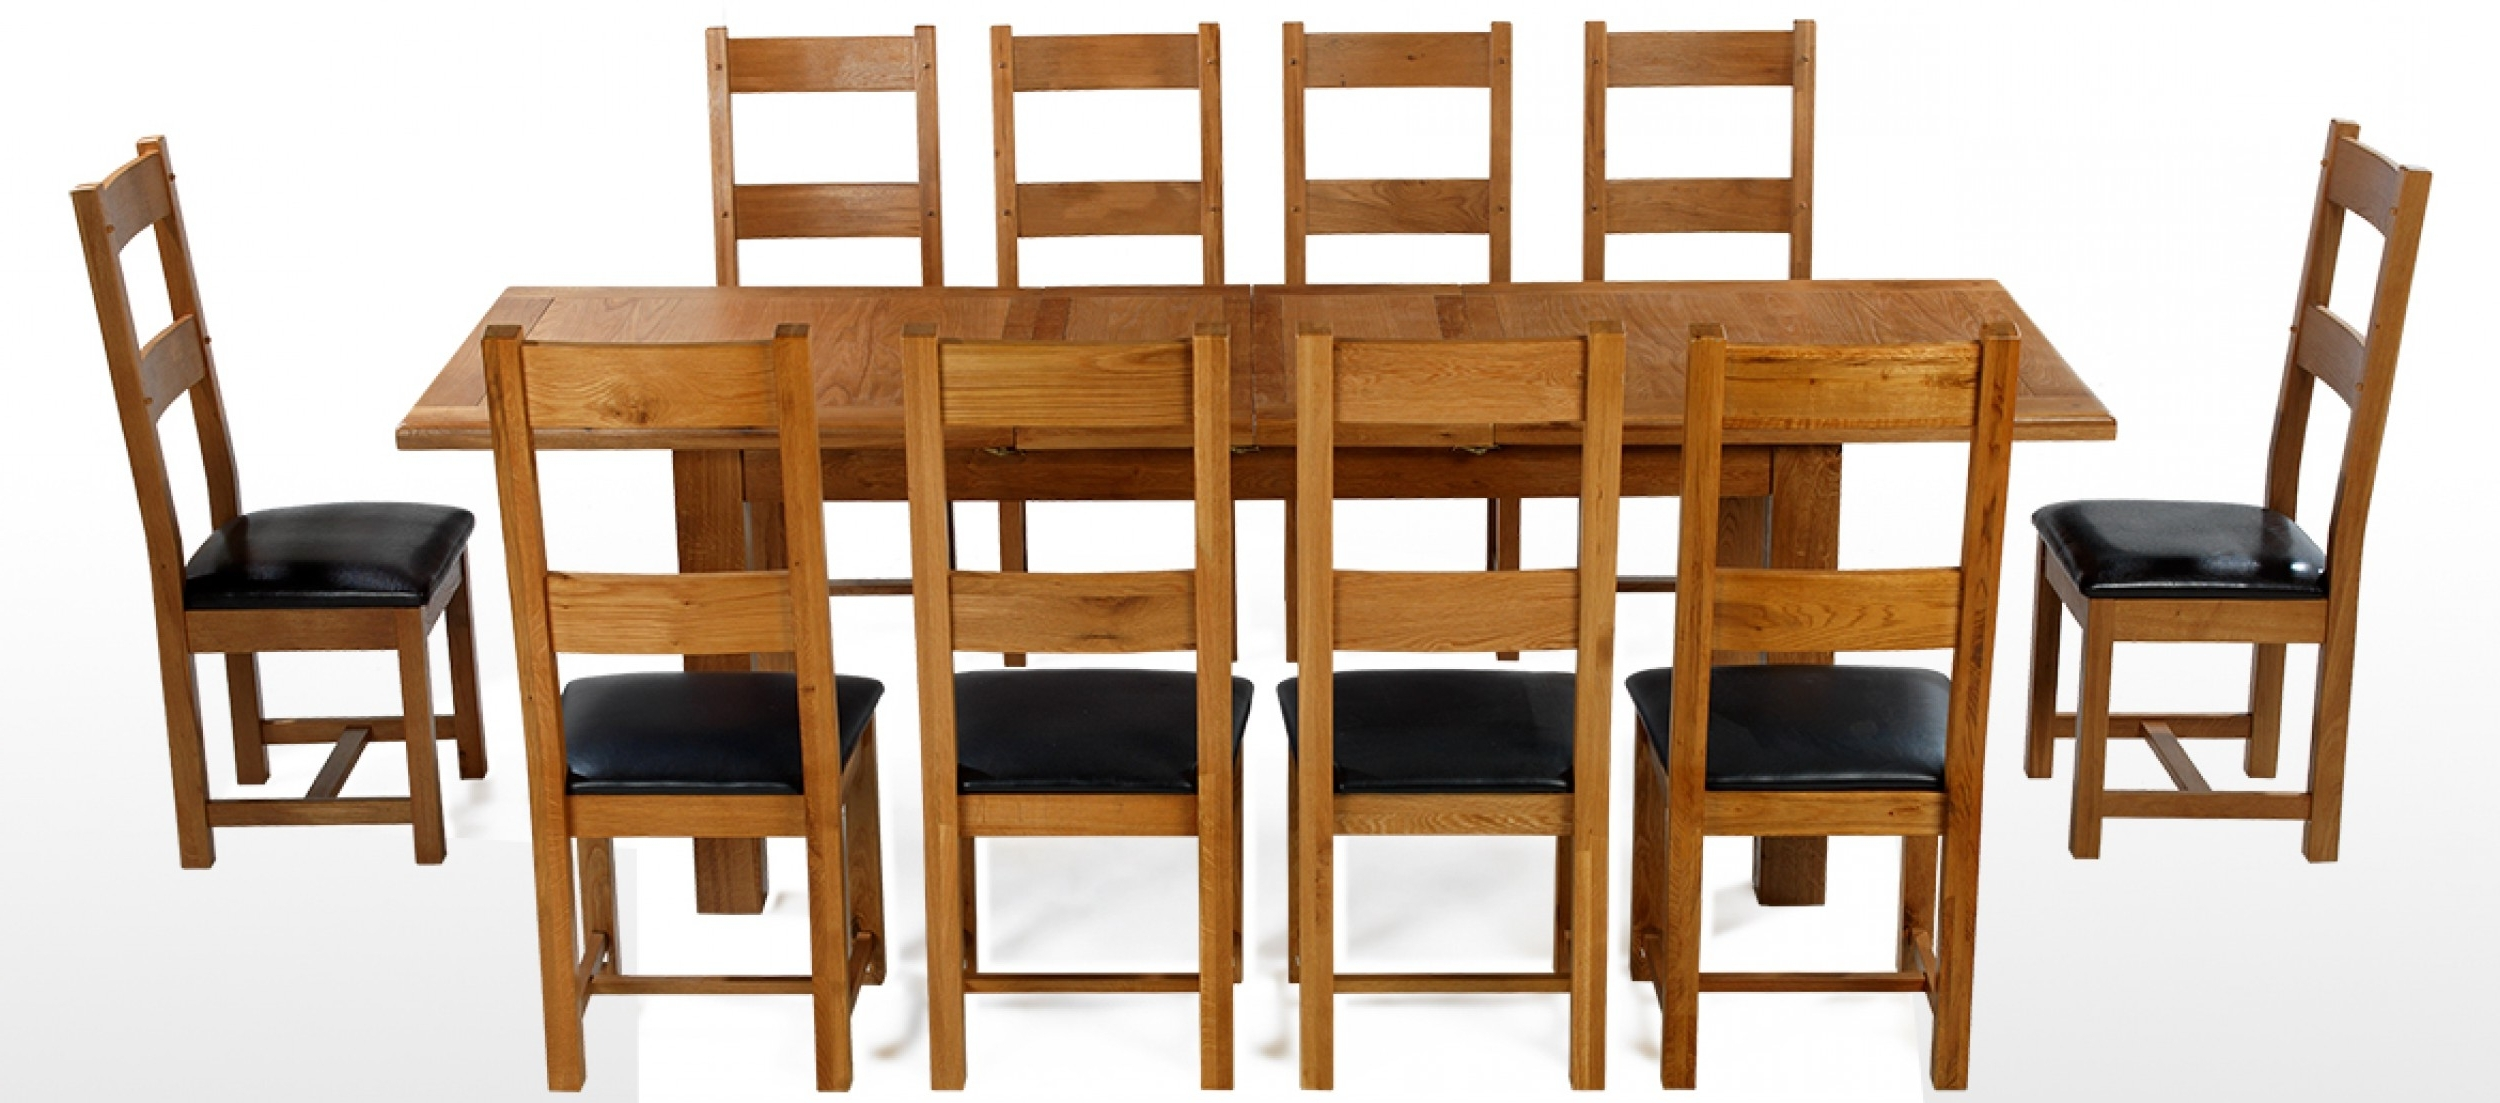 Barham Oak 180 250 Cm Extending Dining Table And 10 Chairs Velvet Intended For Well Known Dining Table And 10 Chairs (View 25 of 25)